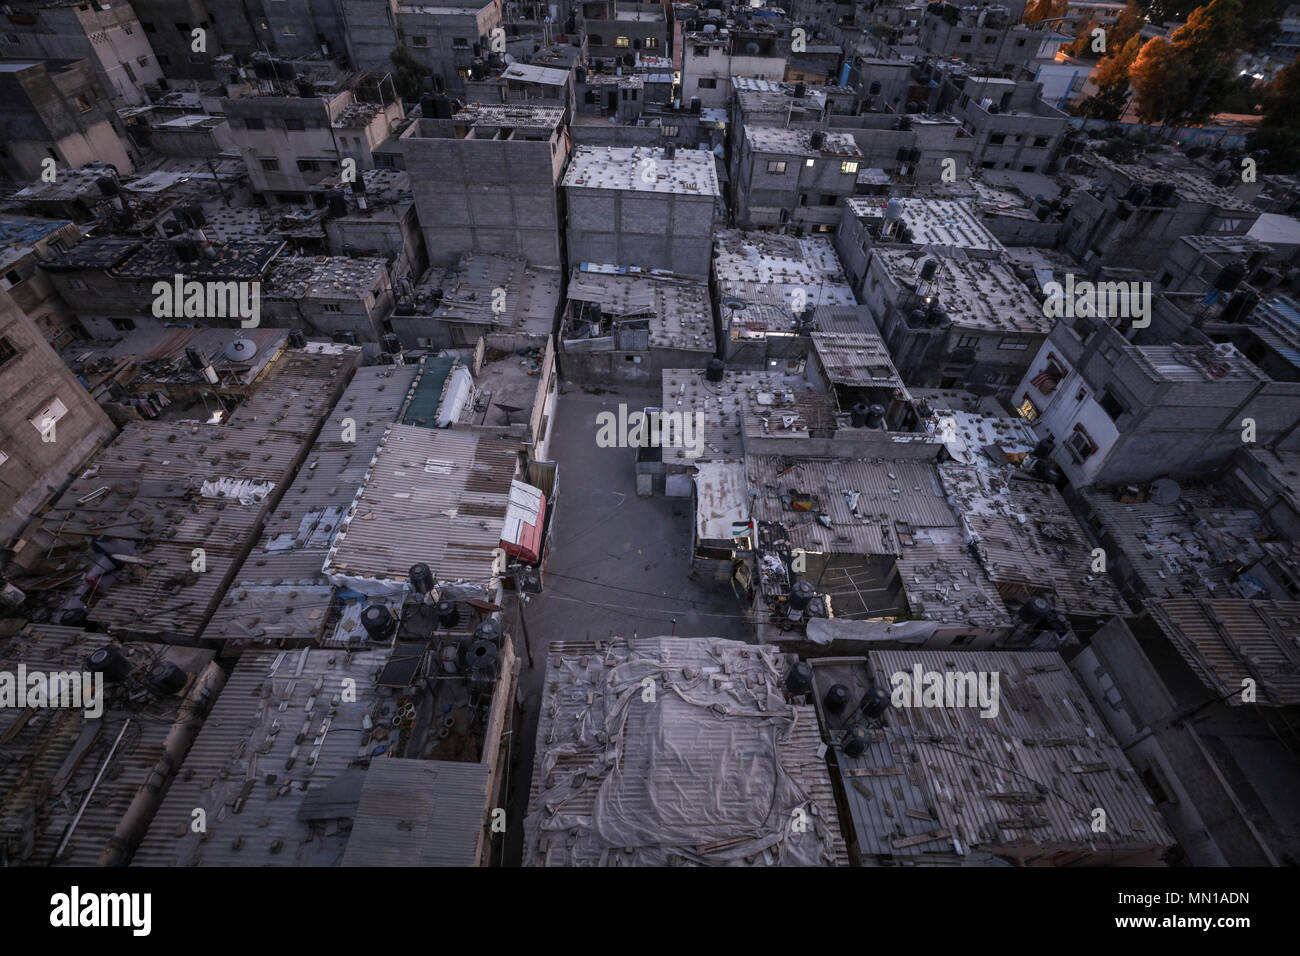 General View Palestinian Refugee Camp Stock Photos & General